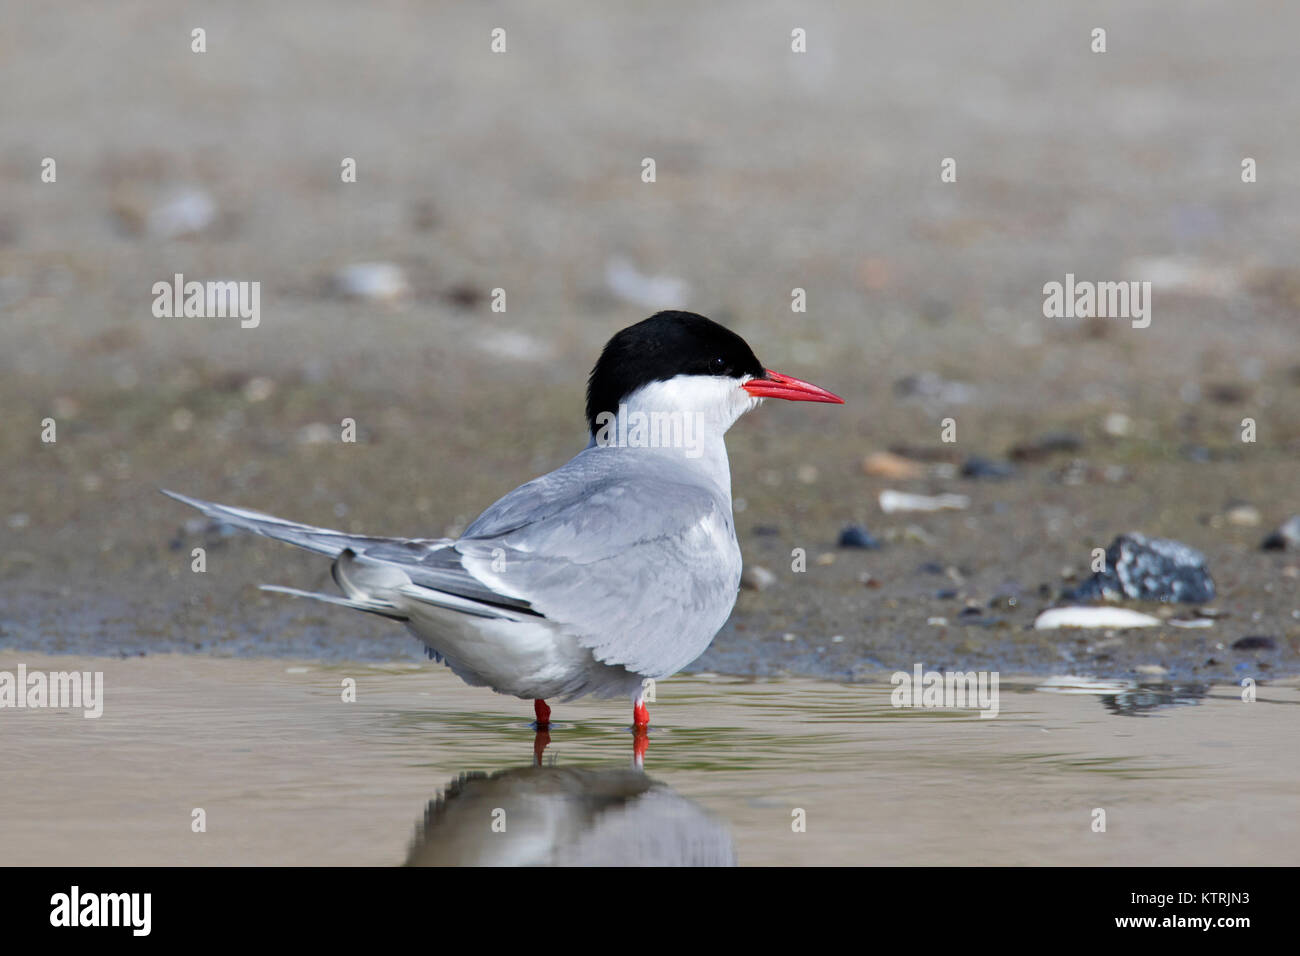 Arctic tern (Sterna paradisaea) in breeding plumage on beach in summer - Stock Image